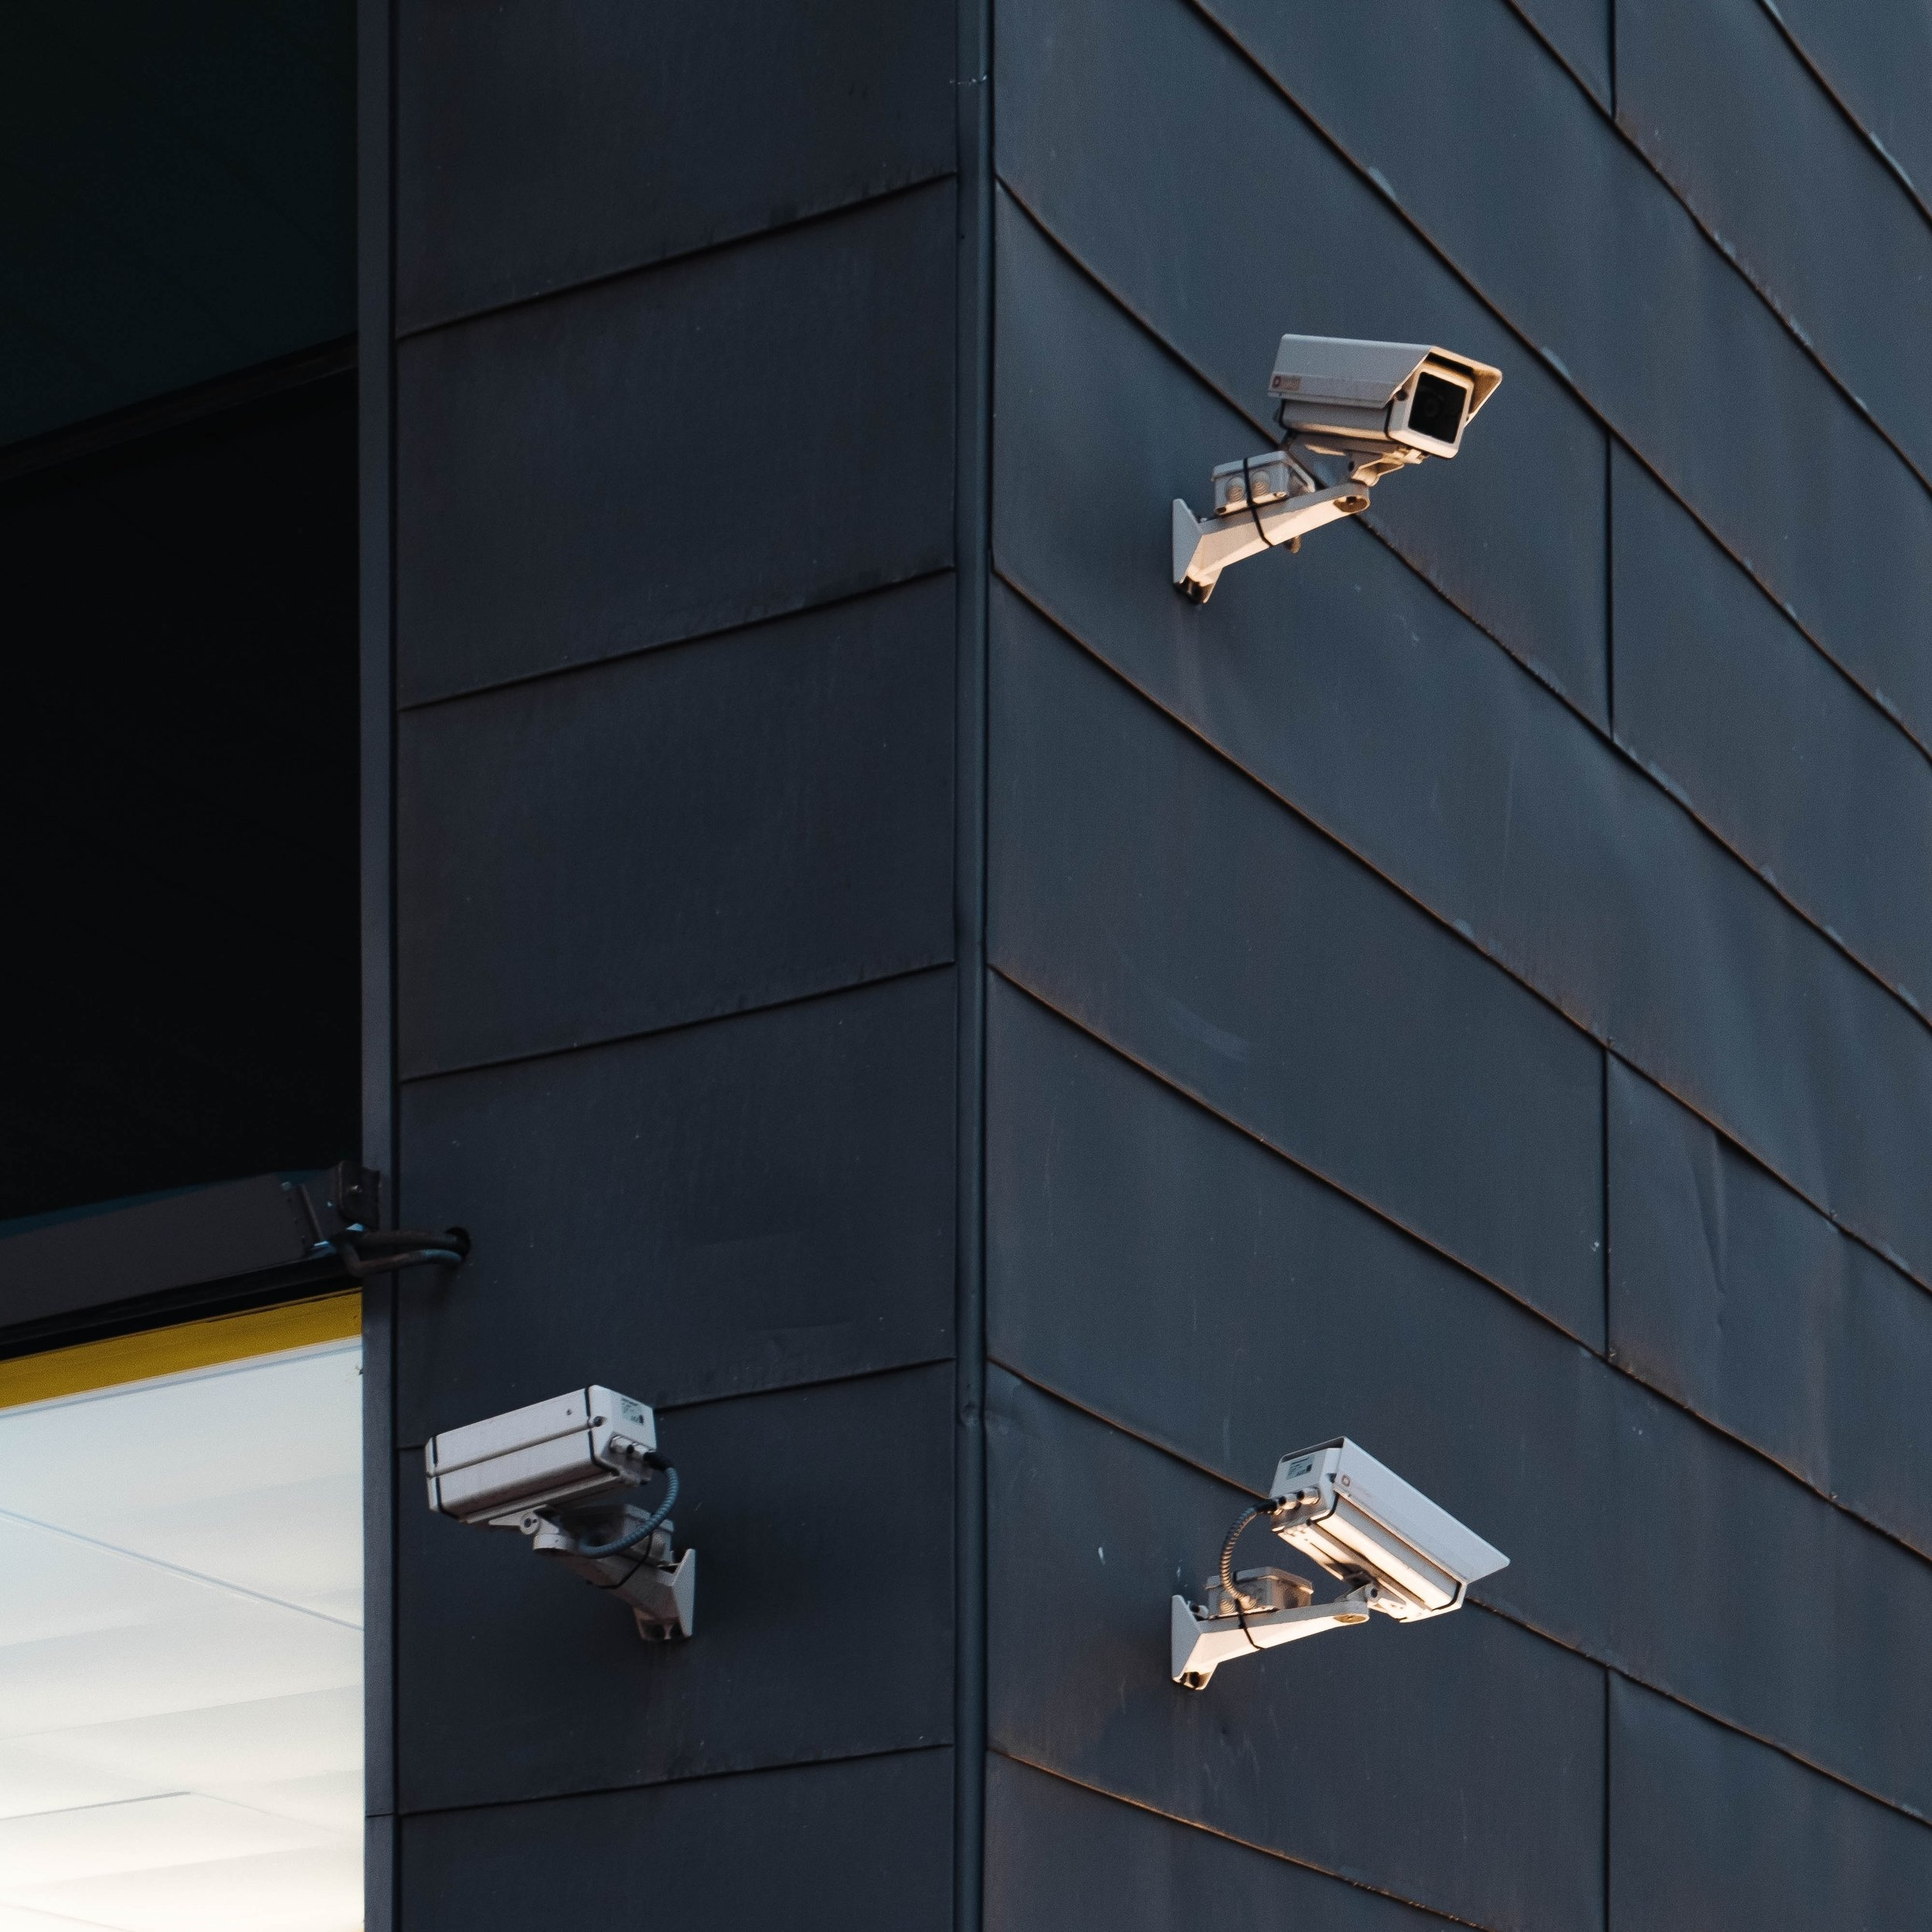 CCTV - Whether you have no surveillance, legacy analog systems, or high definition IP cameras, we are proud to offer integration services and expert CCTV maintenance for virtually any business.